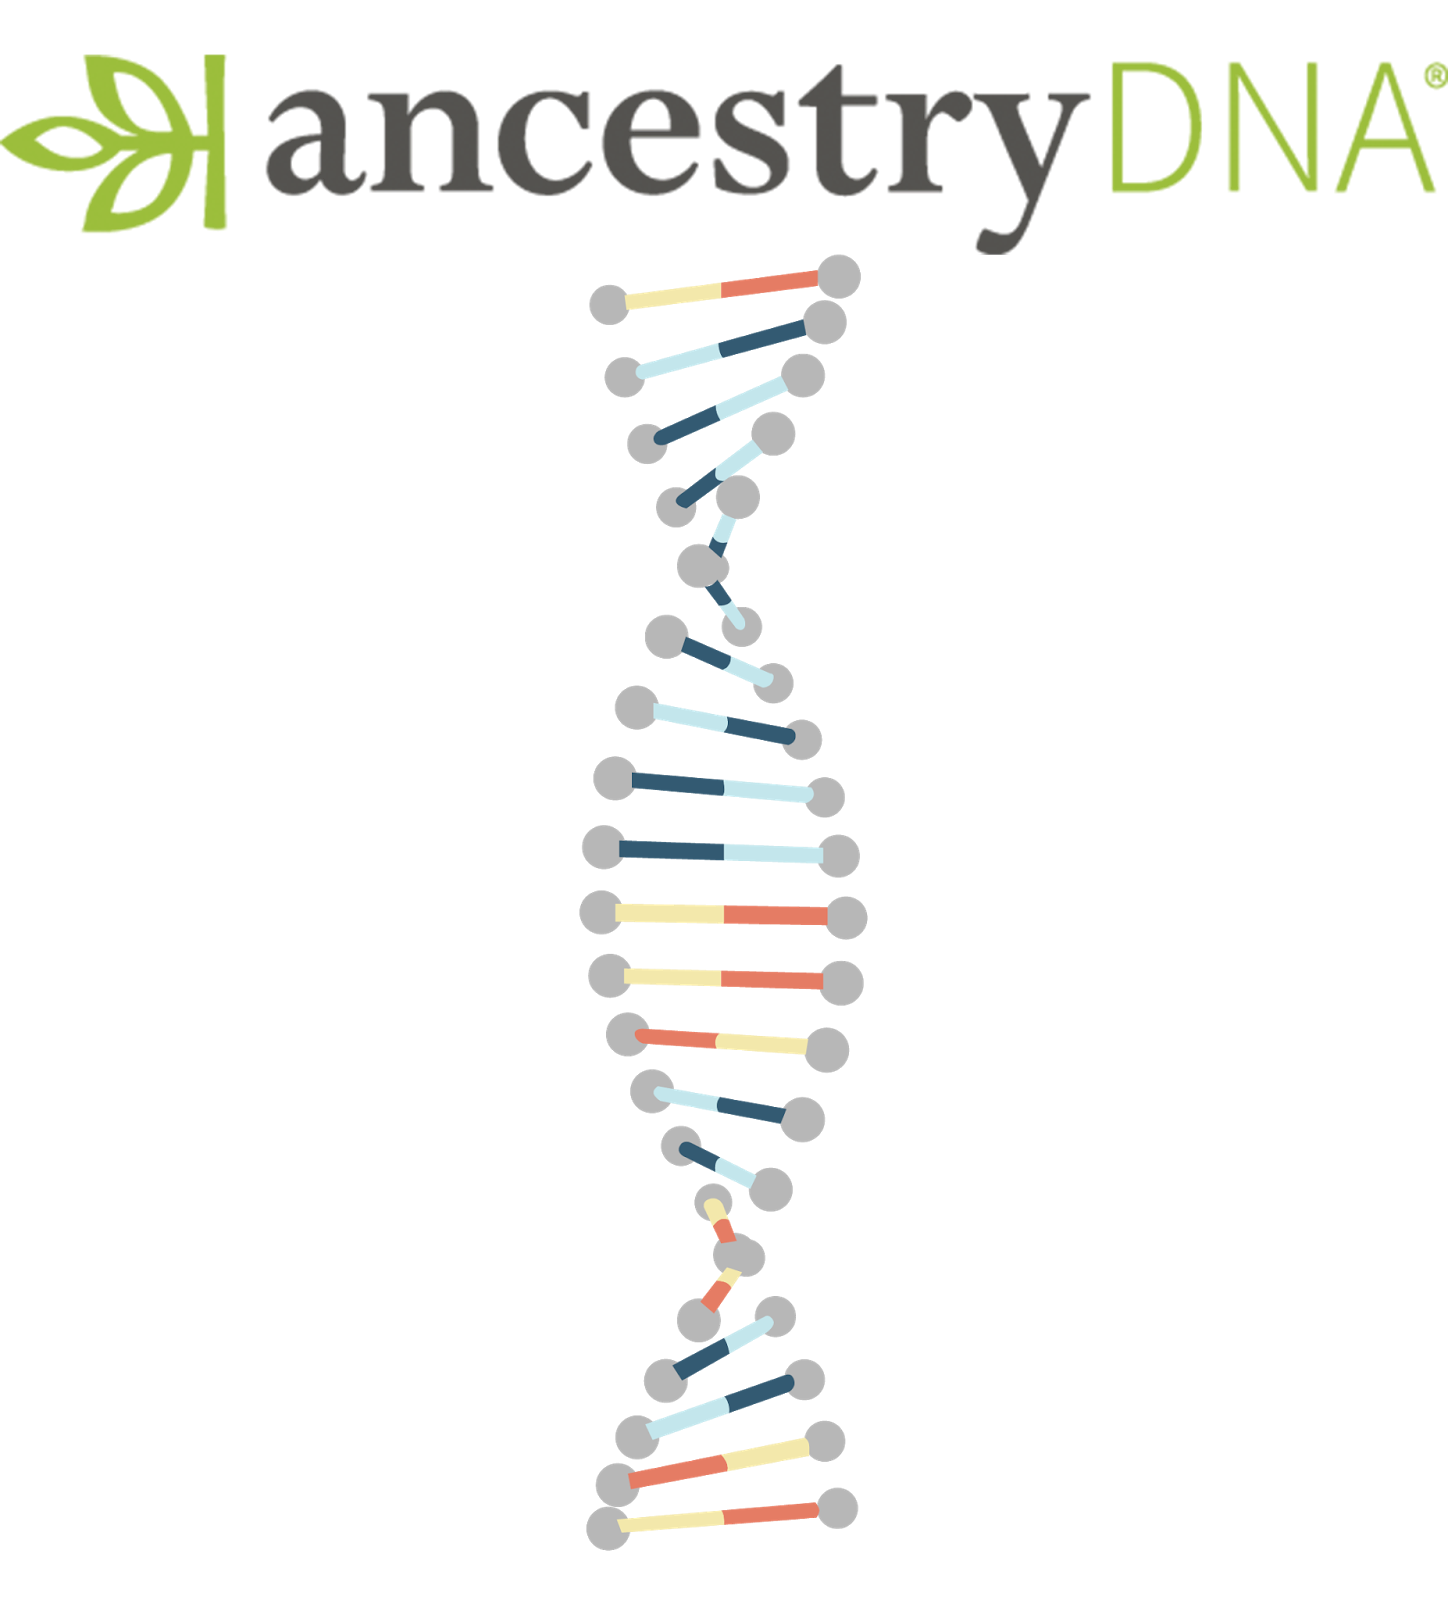 Dna and ancestry : Oil change wilmington nc